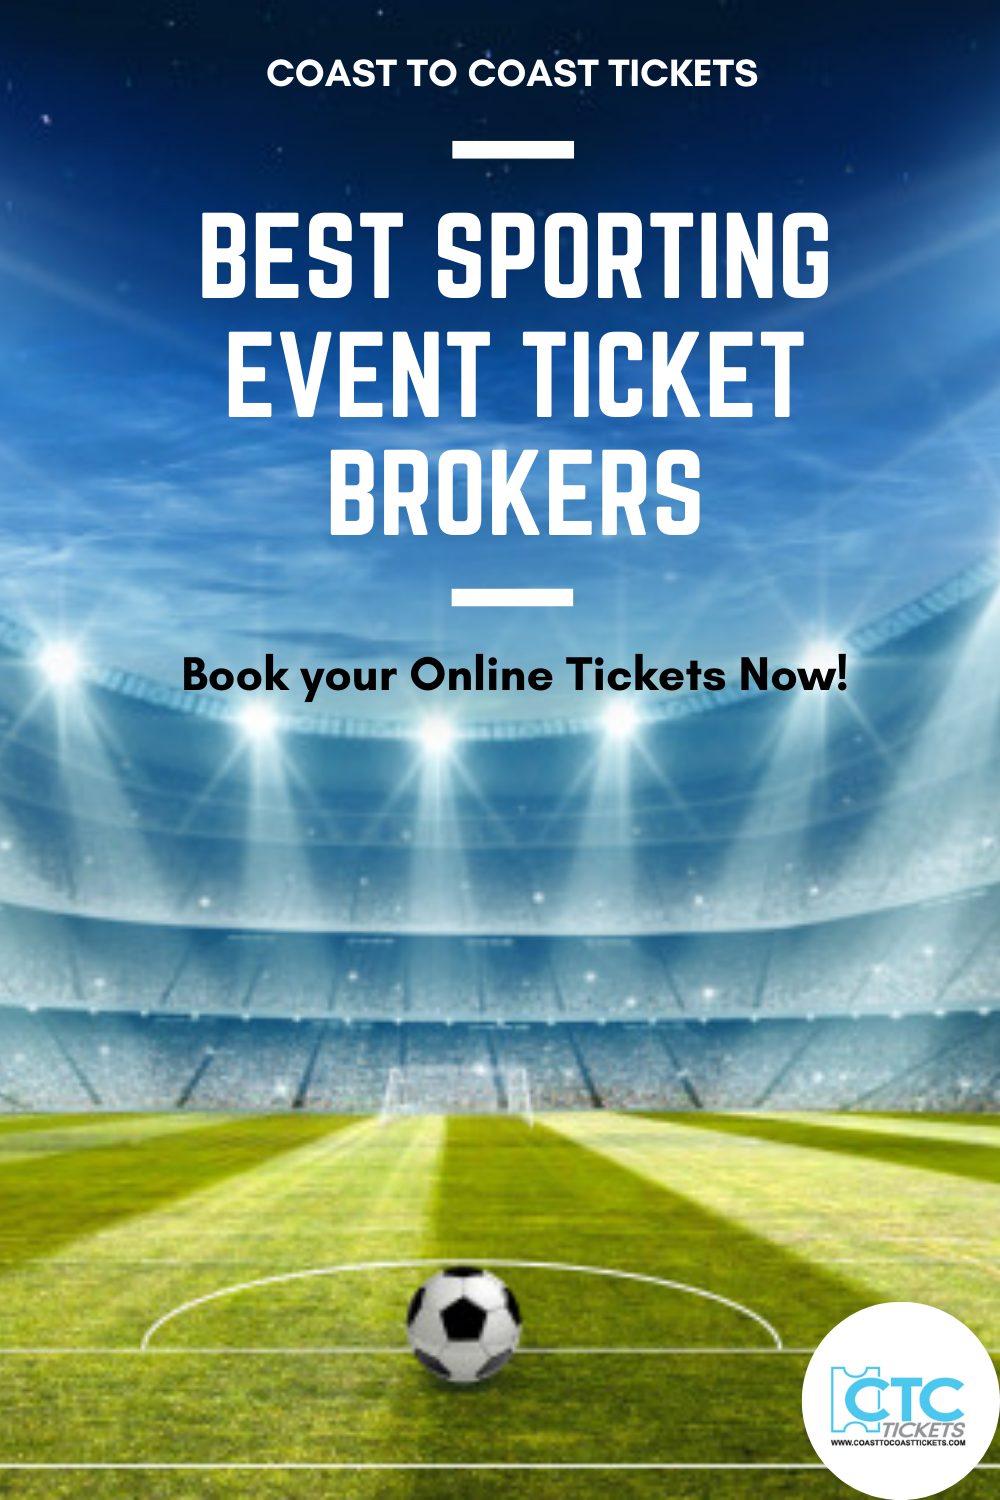 For sports lovers, now wait is over! Just browse the listing of sports events from our official website and book your seat for a live match. We provide tickets at the cheapest rate.  Coast to Coast Tickets is the best Nfl ticket broker agency. All tickets are 100% guaranteed. Trust us and enjoy your favorite game.#onlineticket #ticketbrokers #livematch #sports #bookticket #footballmatch #chicago #coasttocoasttickets #tickets #buytickets #nfl #nhlmatch #cheaptickets #musicevent #liveshows